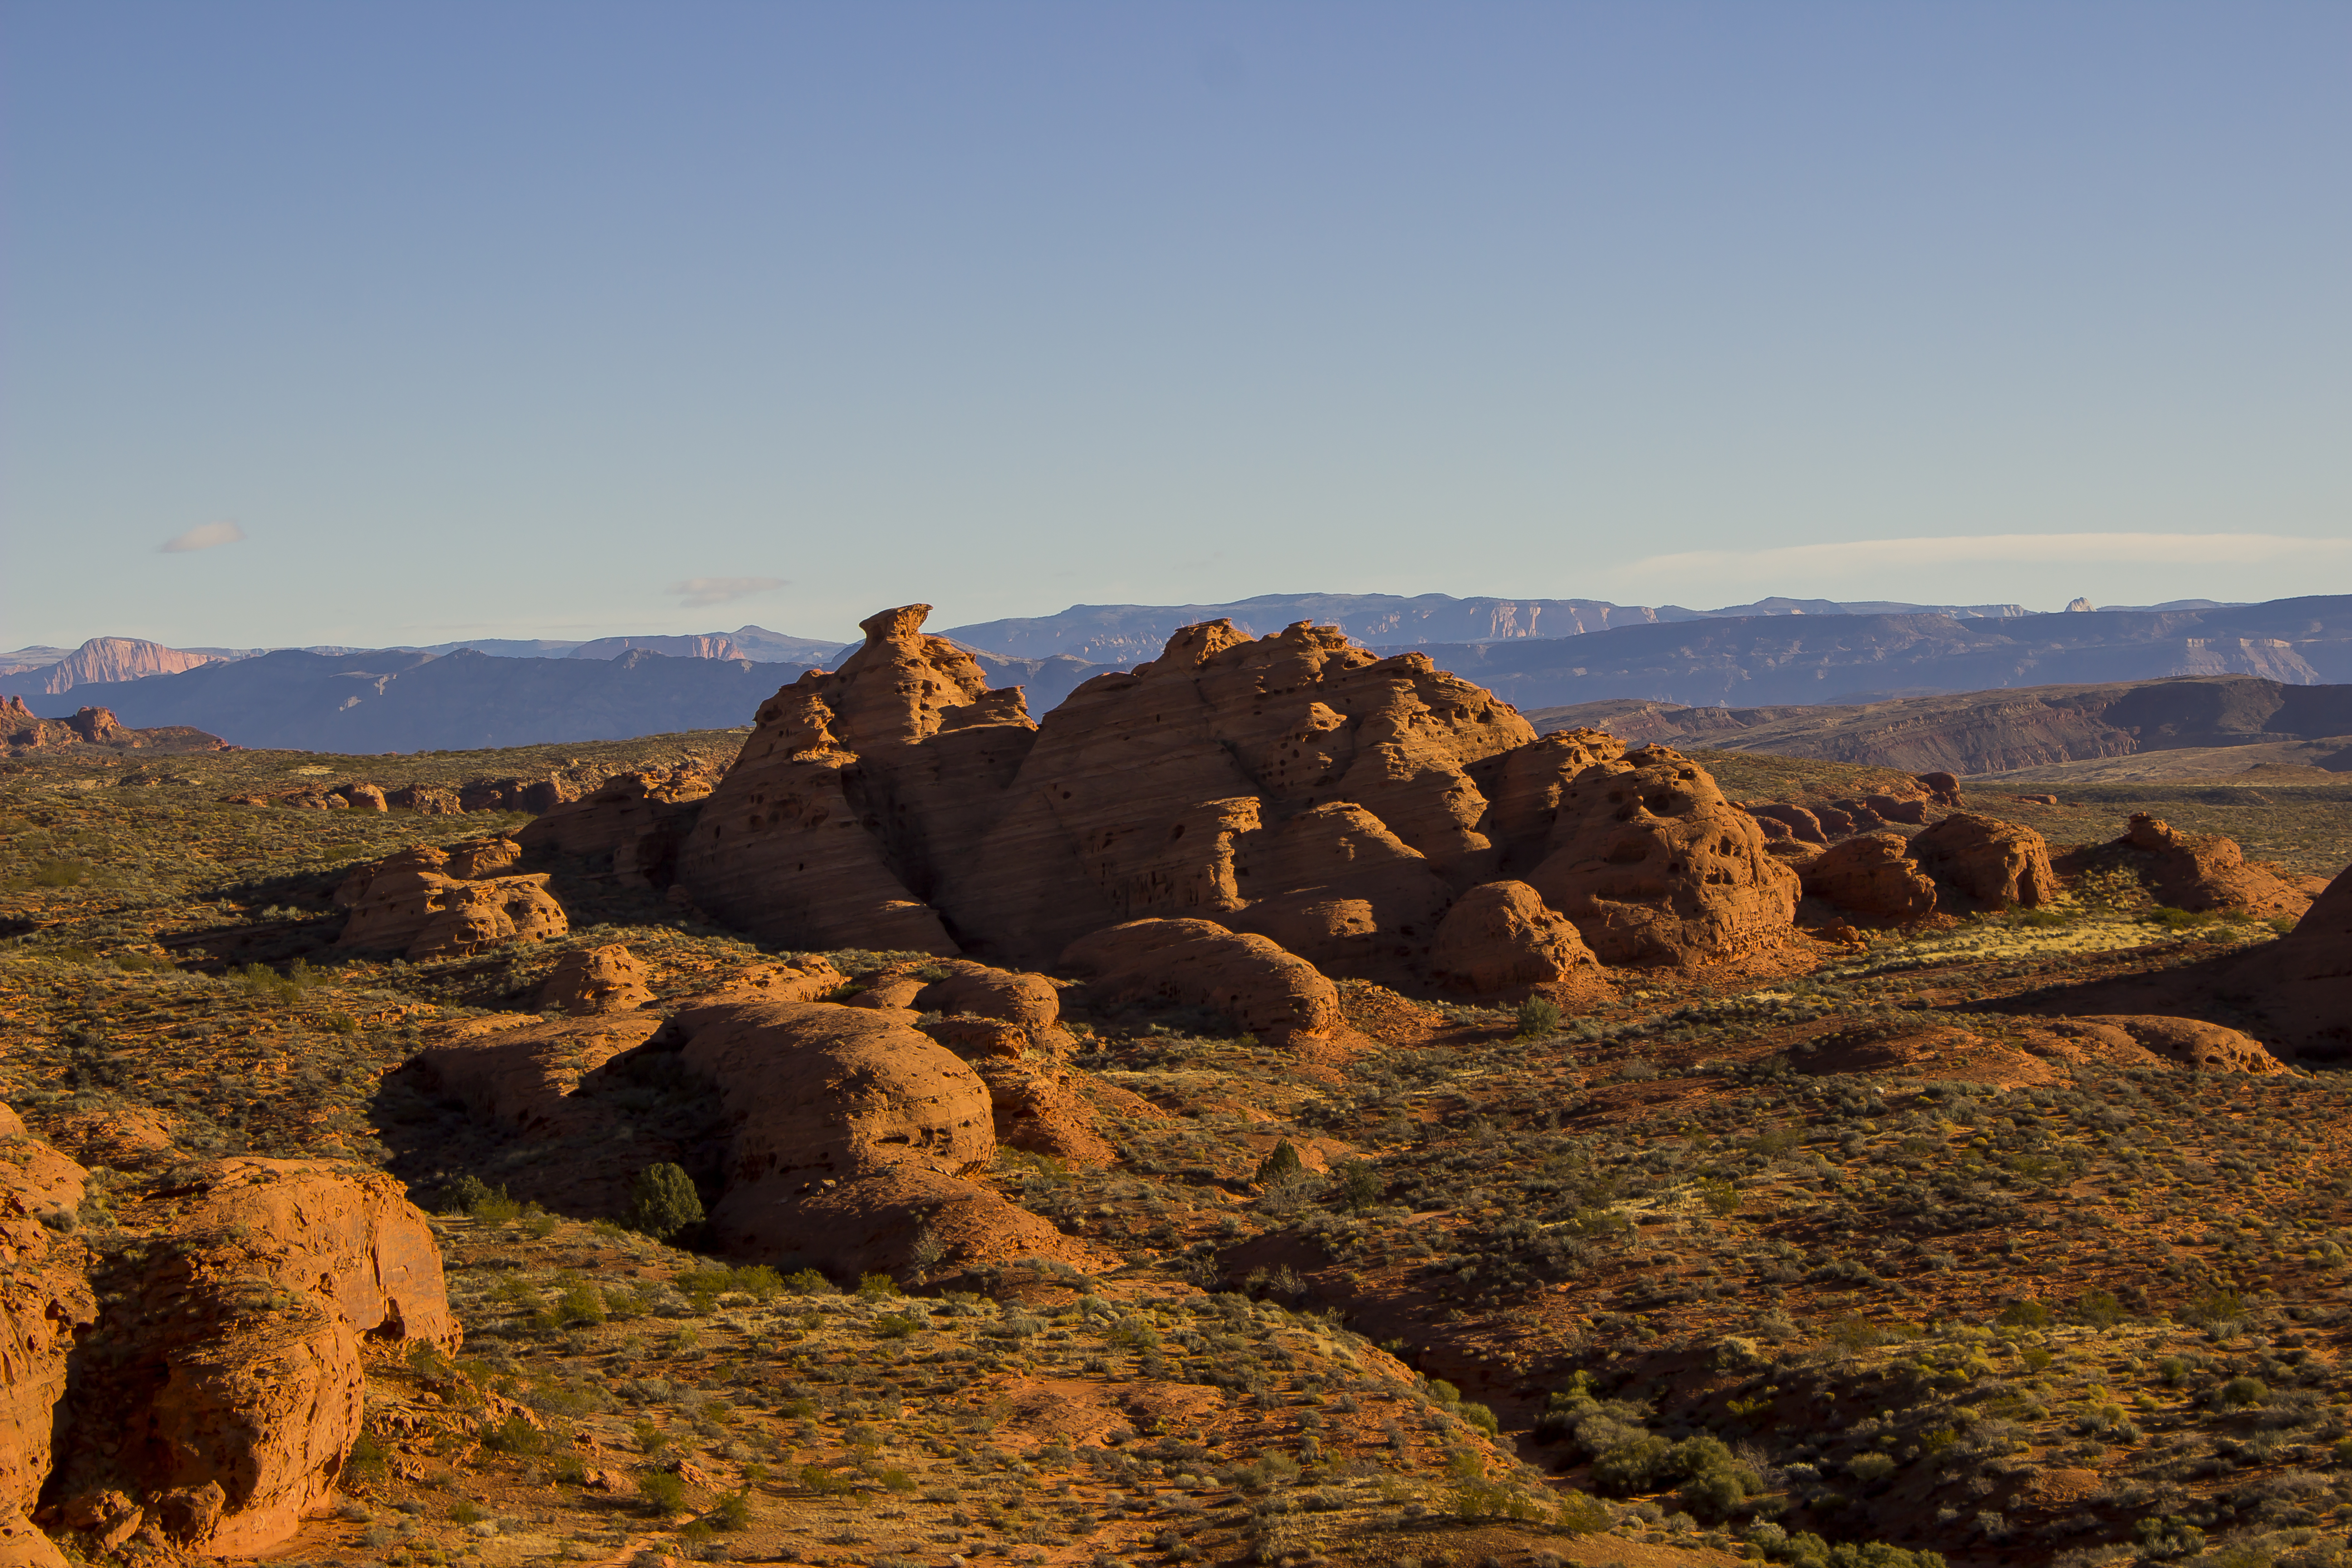 This photo shows Church Rocks in the Red Cliffs National Conservation Area, a federally-controlled land within Washington County | Photo taken Nov. 24, 2014 | Photo by Don Gilman, St. George News